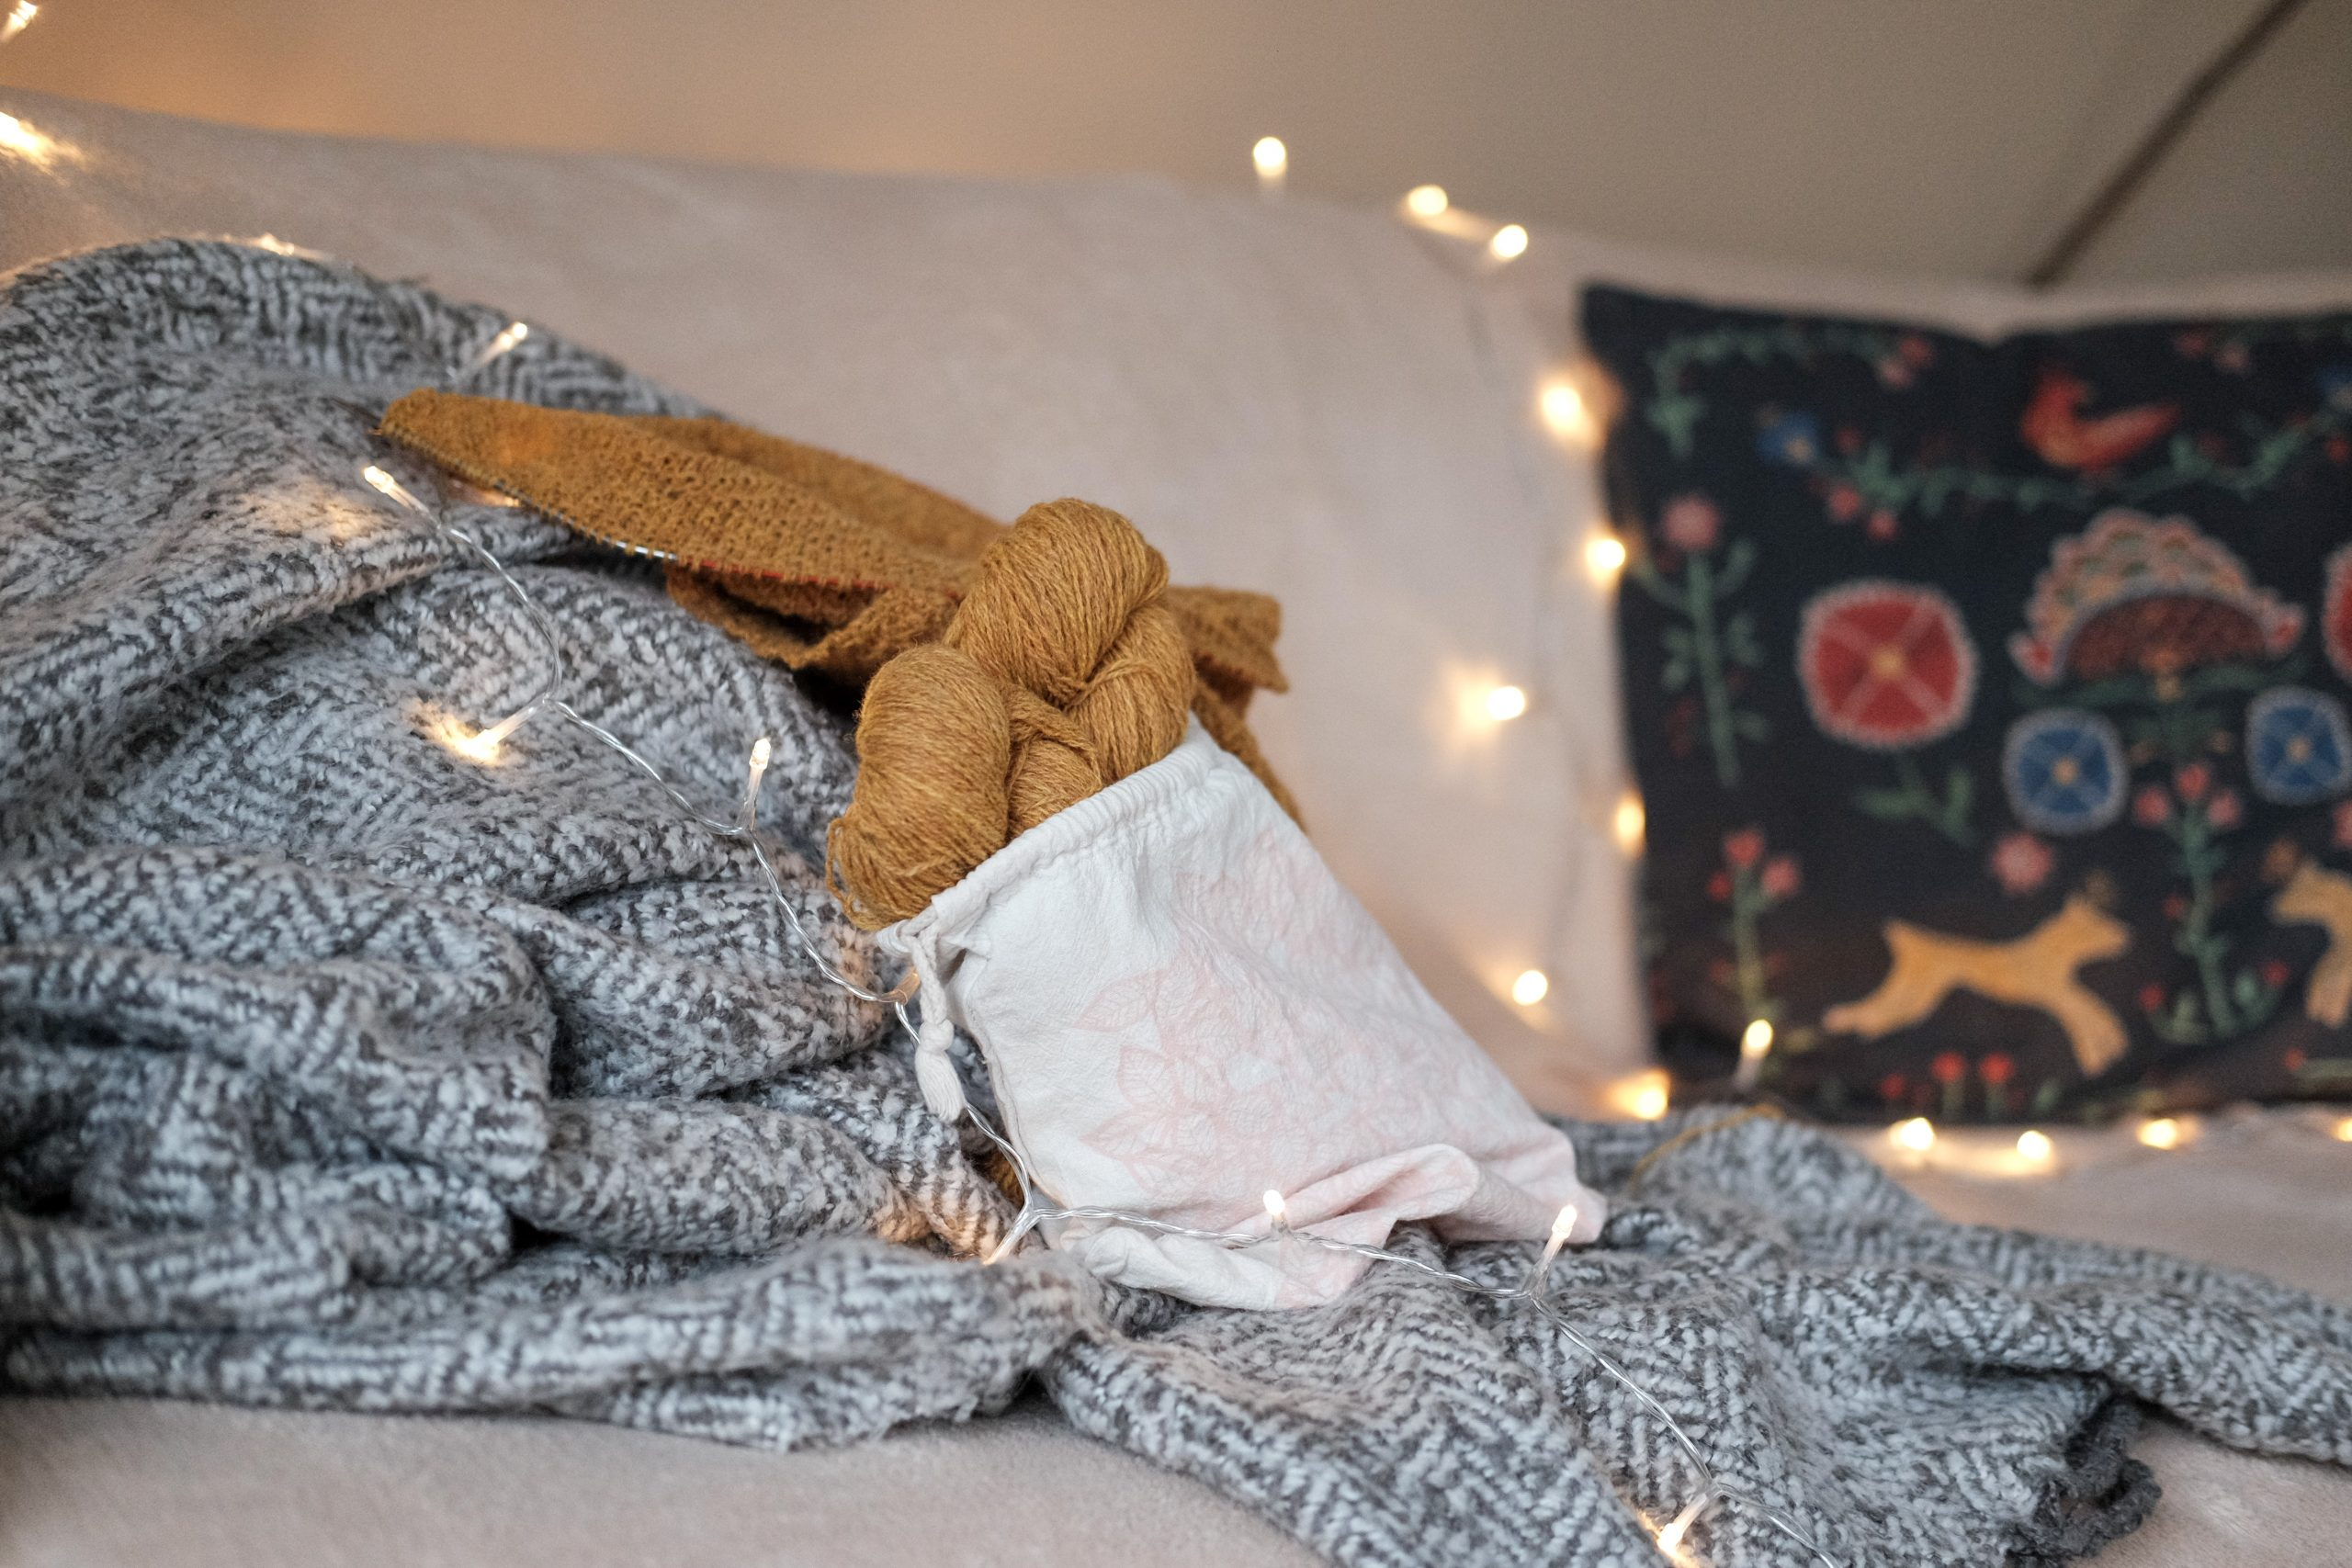 Tips on keeping your bedroom warm this winter